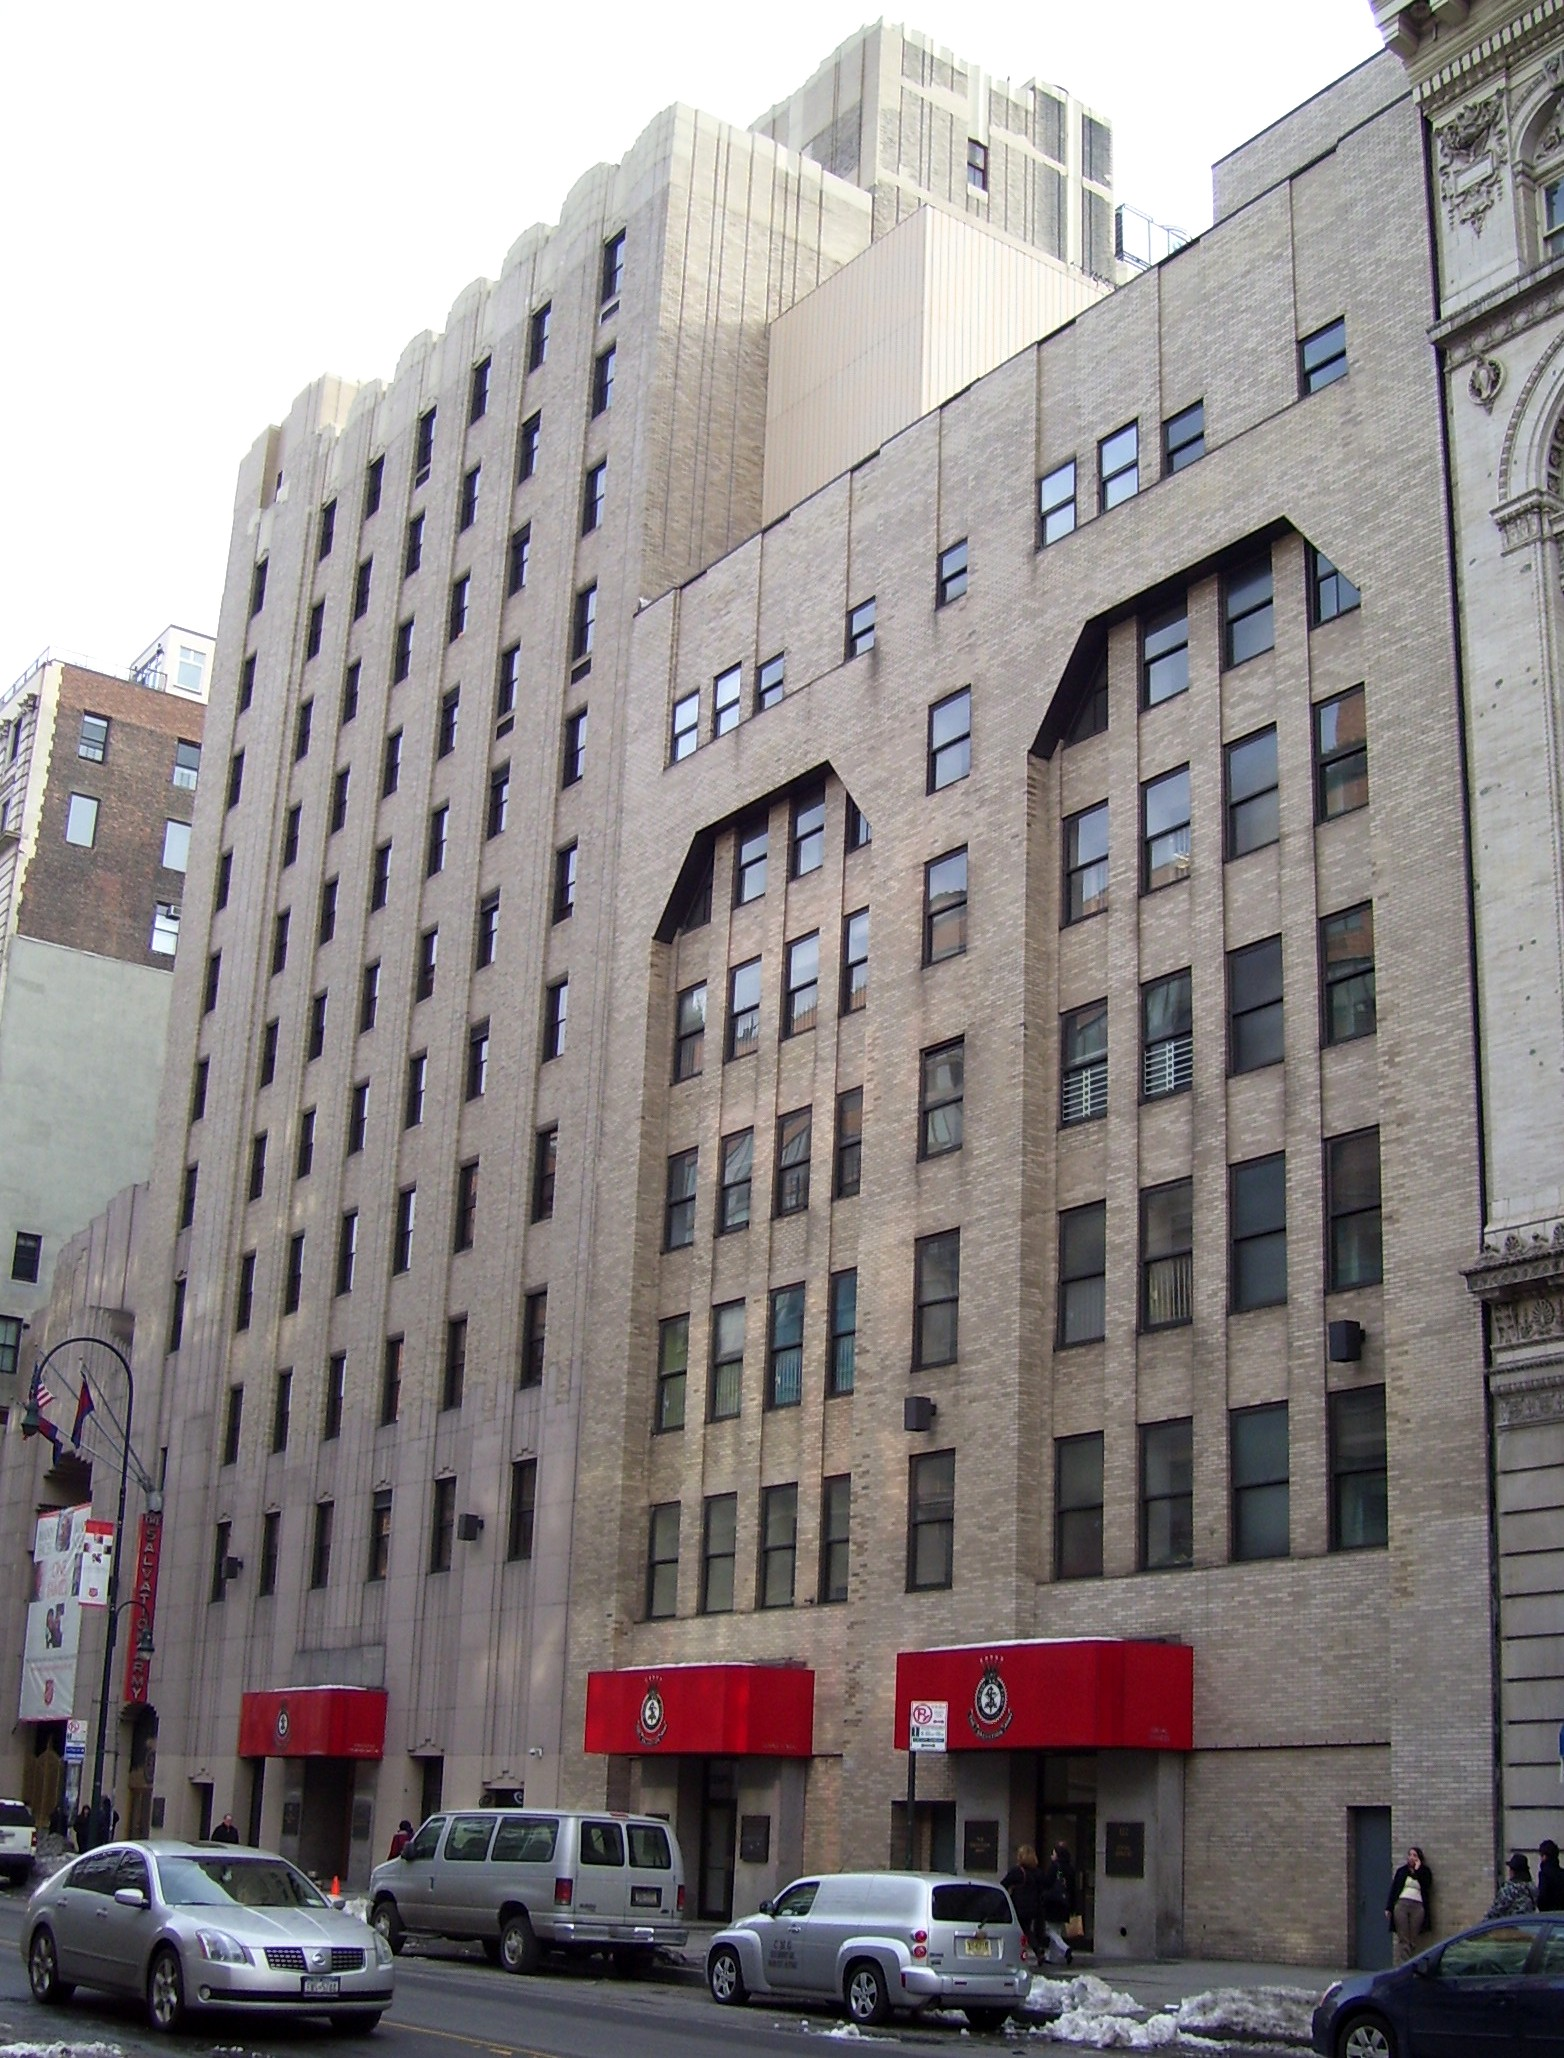 File:Salvation Army Headquarters from west.jpg - Wikimedia Commons